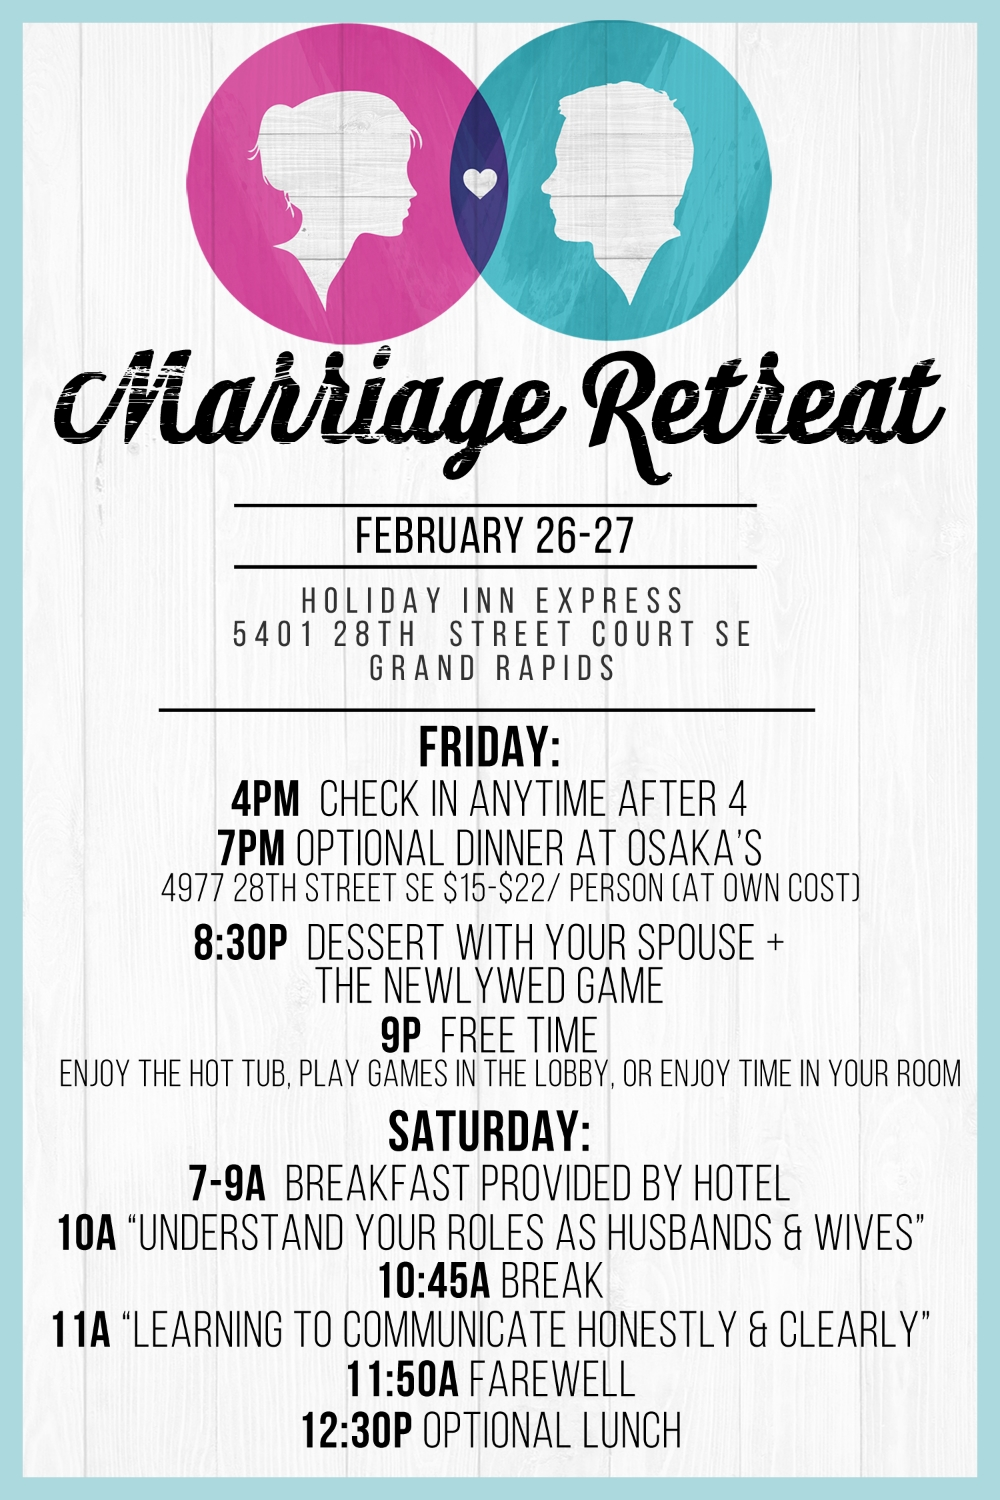 Marriage Retreat Itinerary.jpg